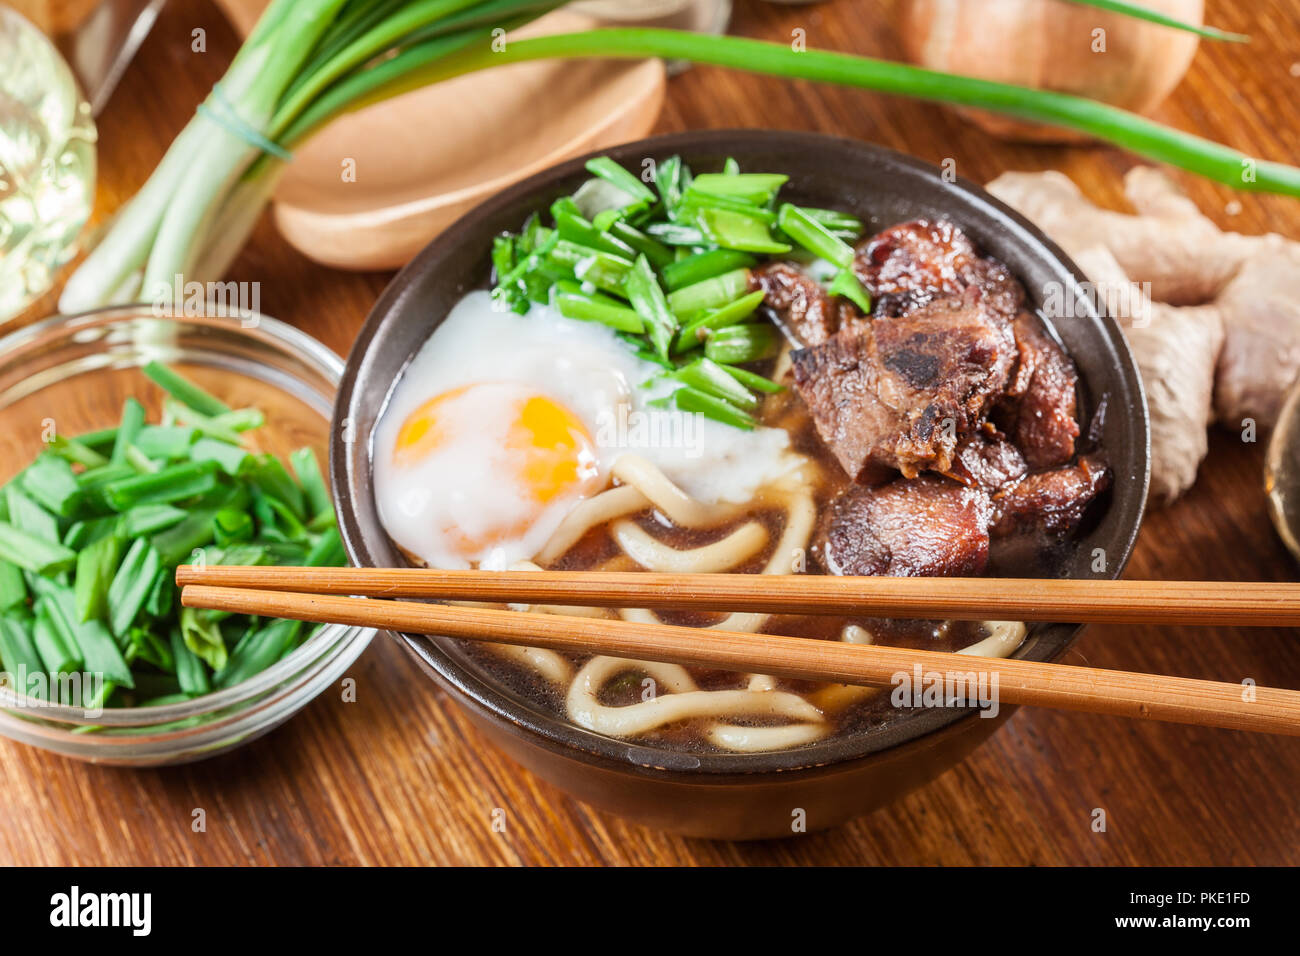 Japanese Udon noodles with beef, egg, green onion and soup in a brown bowl - Stock Image